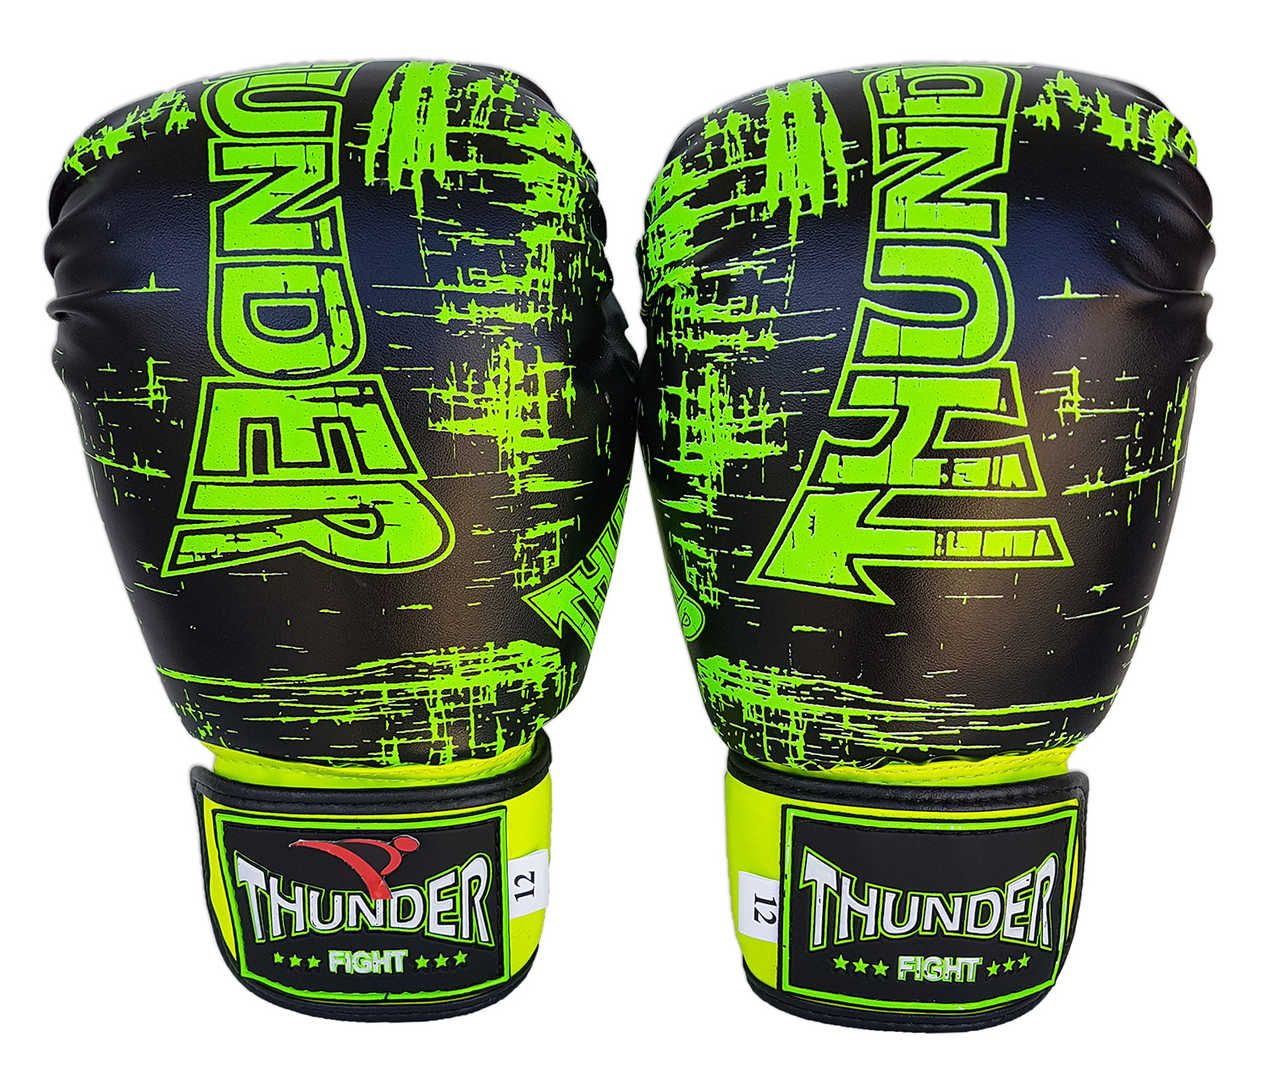 Super Kit de Muay Thai / Kickboxing 16oz - Caneleira G - Preto / Verde - Thunder Fight  - PRALUTA SHOP